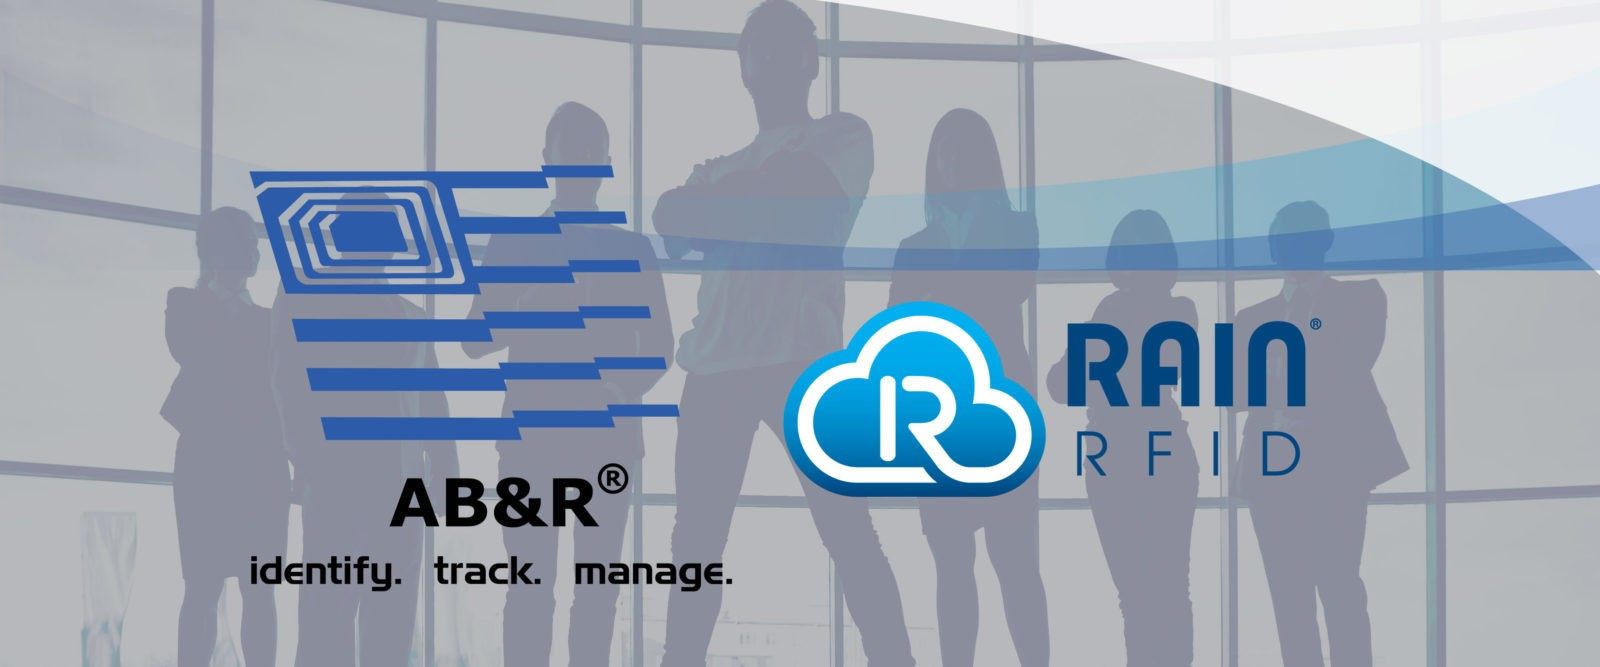 AB&R joins RAIN RFID alliance